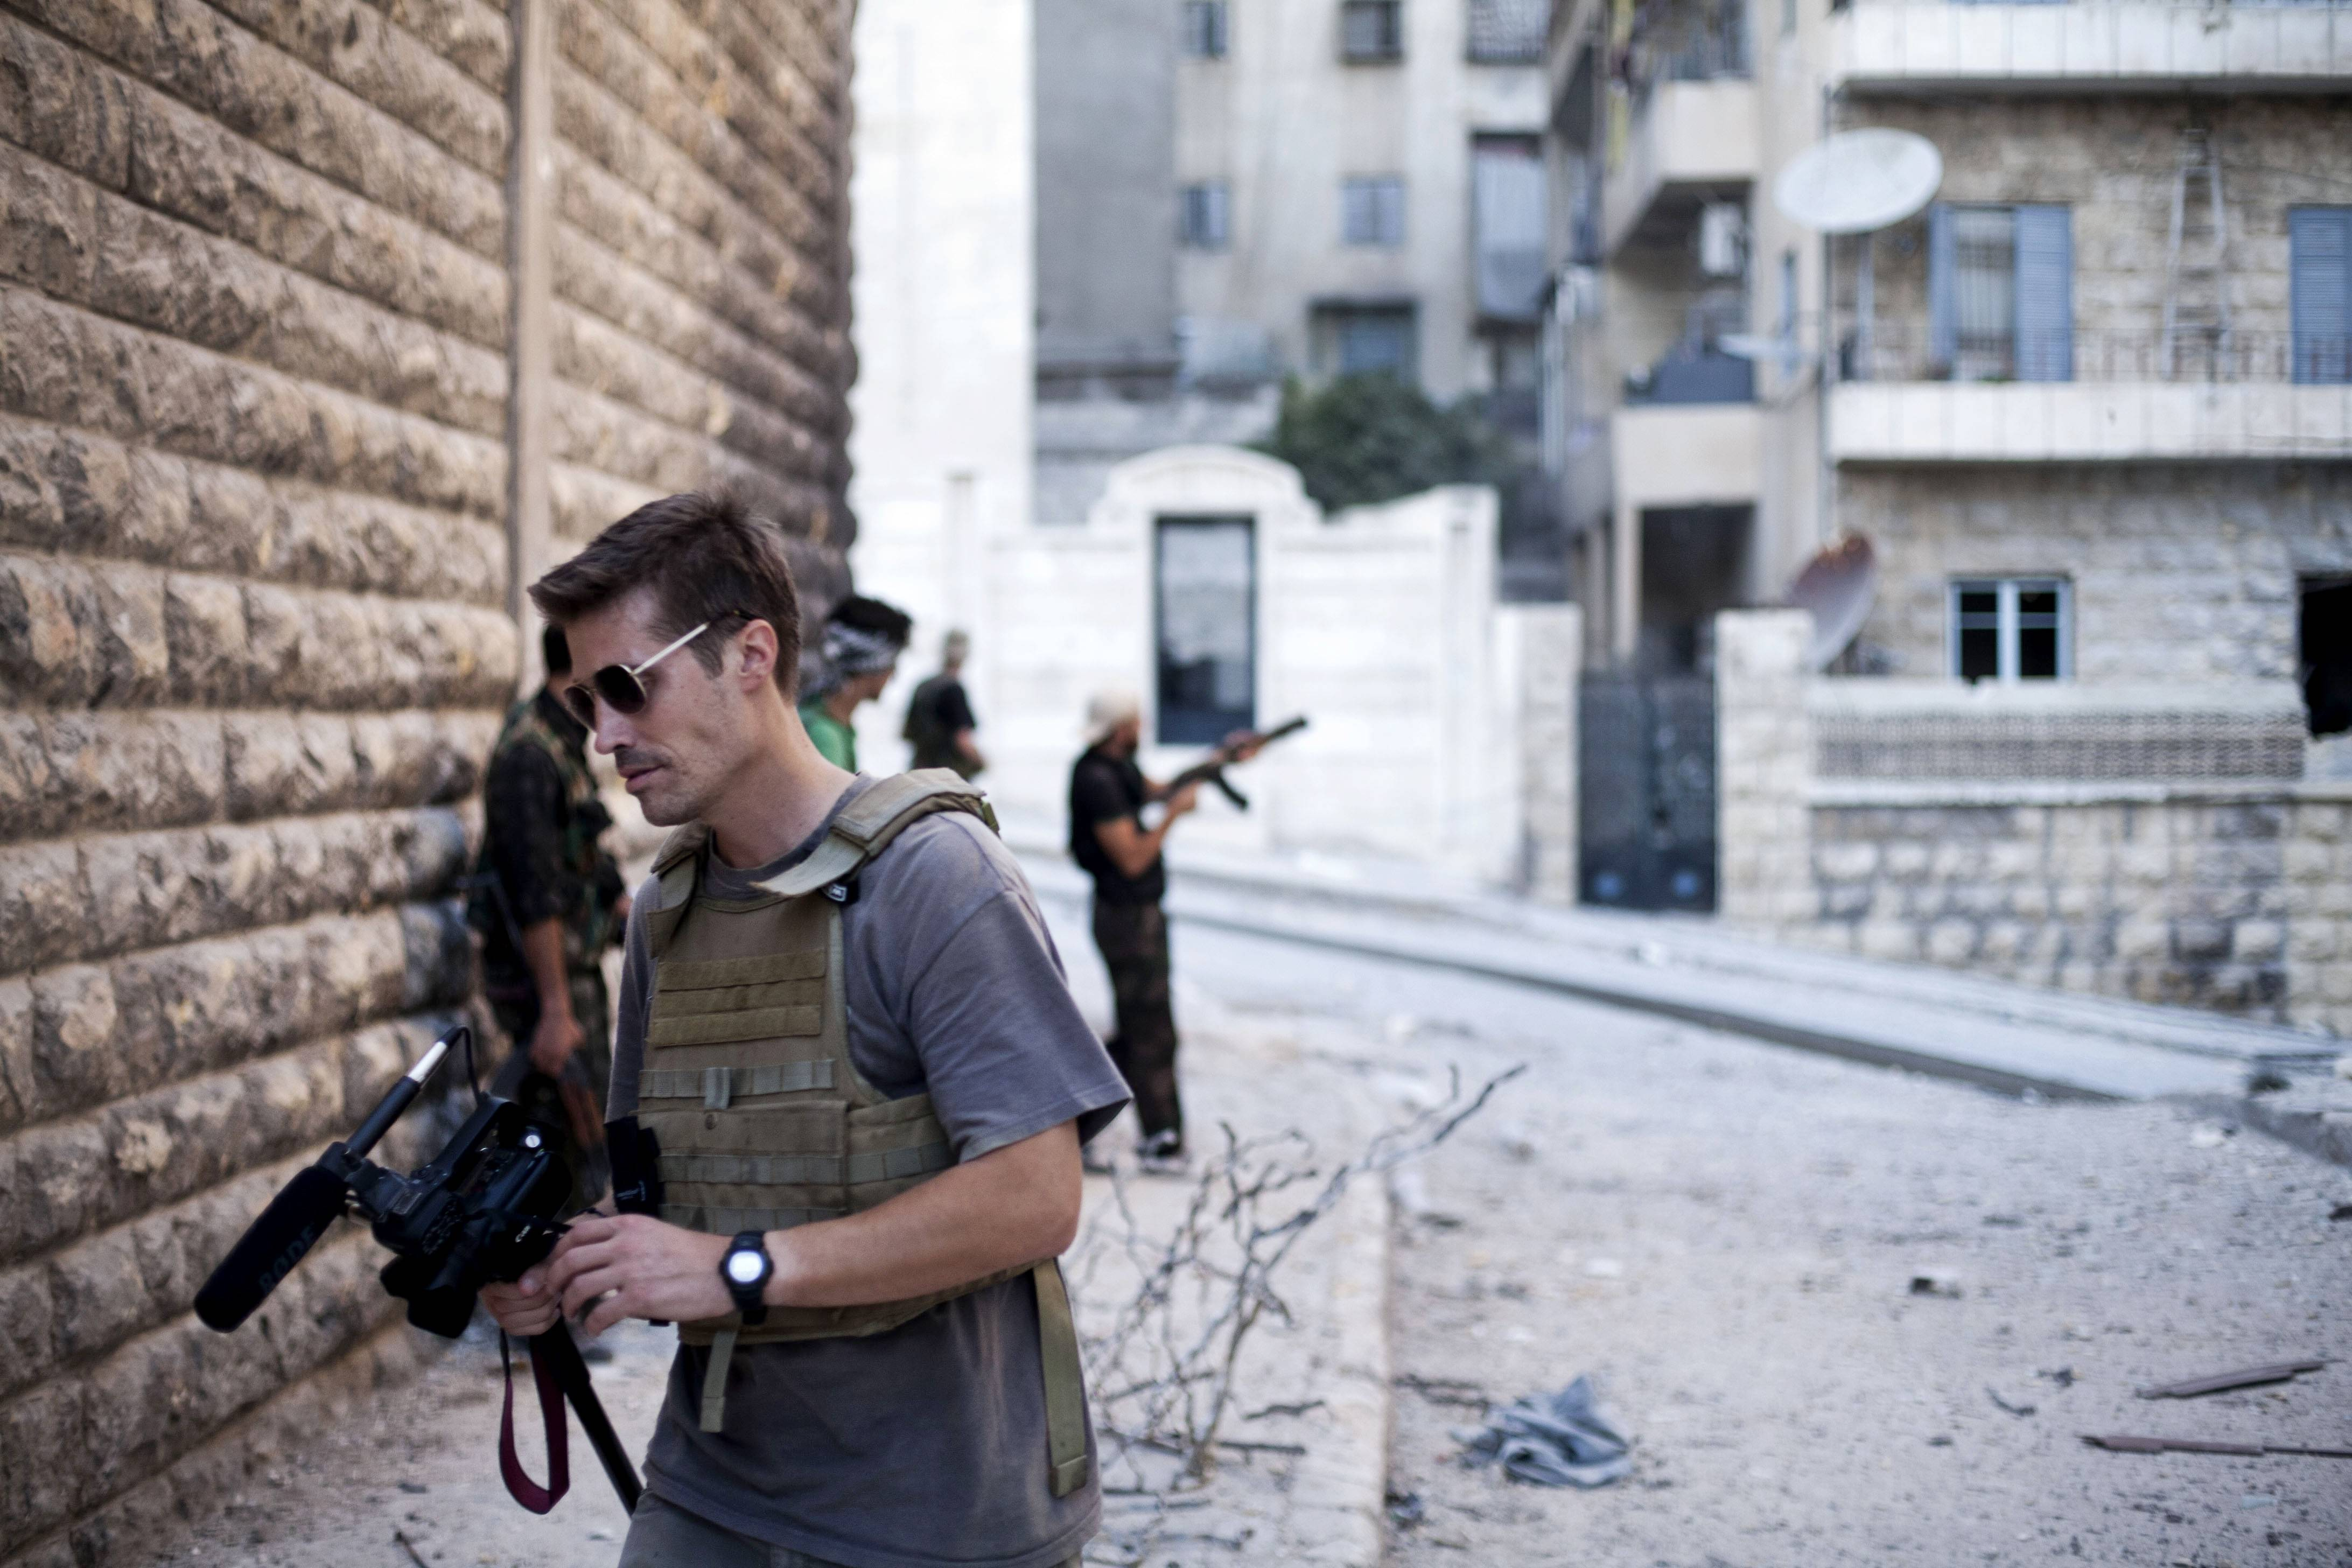 Associated Press/freejamesfoley.org, 2012 Journalist James Foley in Aleppo, Syria. In a horrifying act of revenge for U.S. airstrikes in northern Iraq, militants with the Islamic State extremist group have beheaded Foley. The journalist was embedded with members of the Indiana Guard's 76th Infantry Brigade Combat Team in Iraq in 2008.